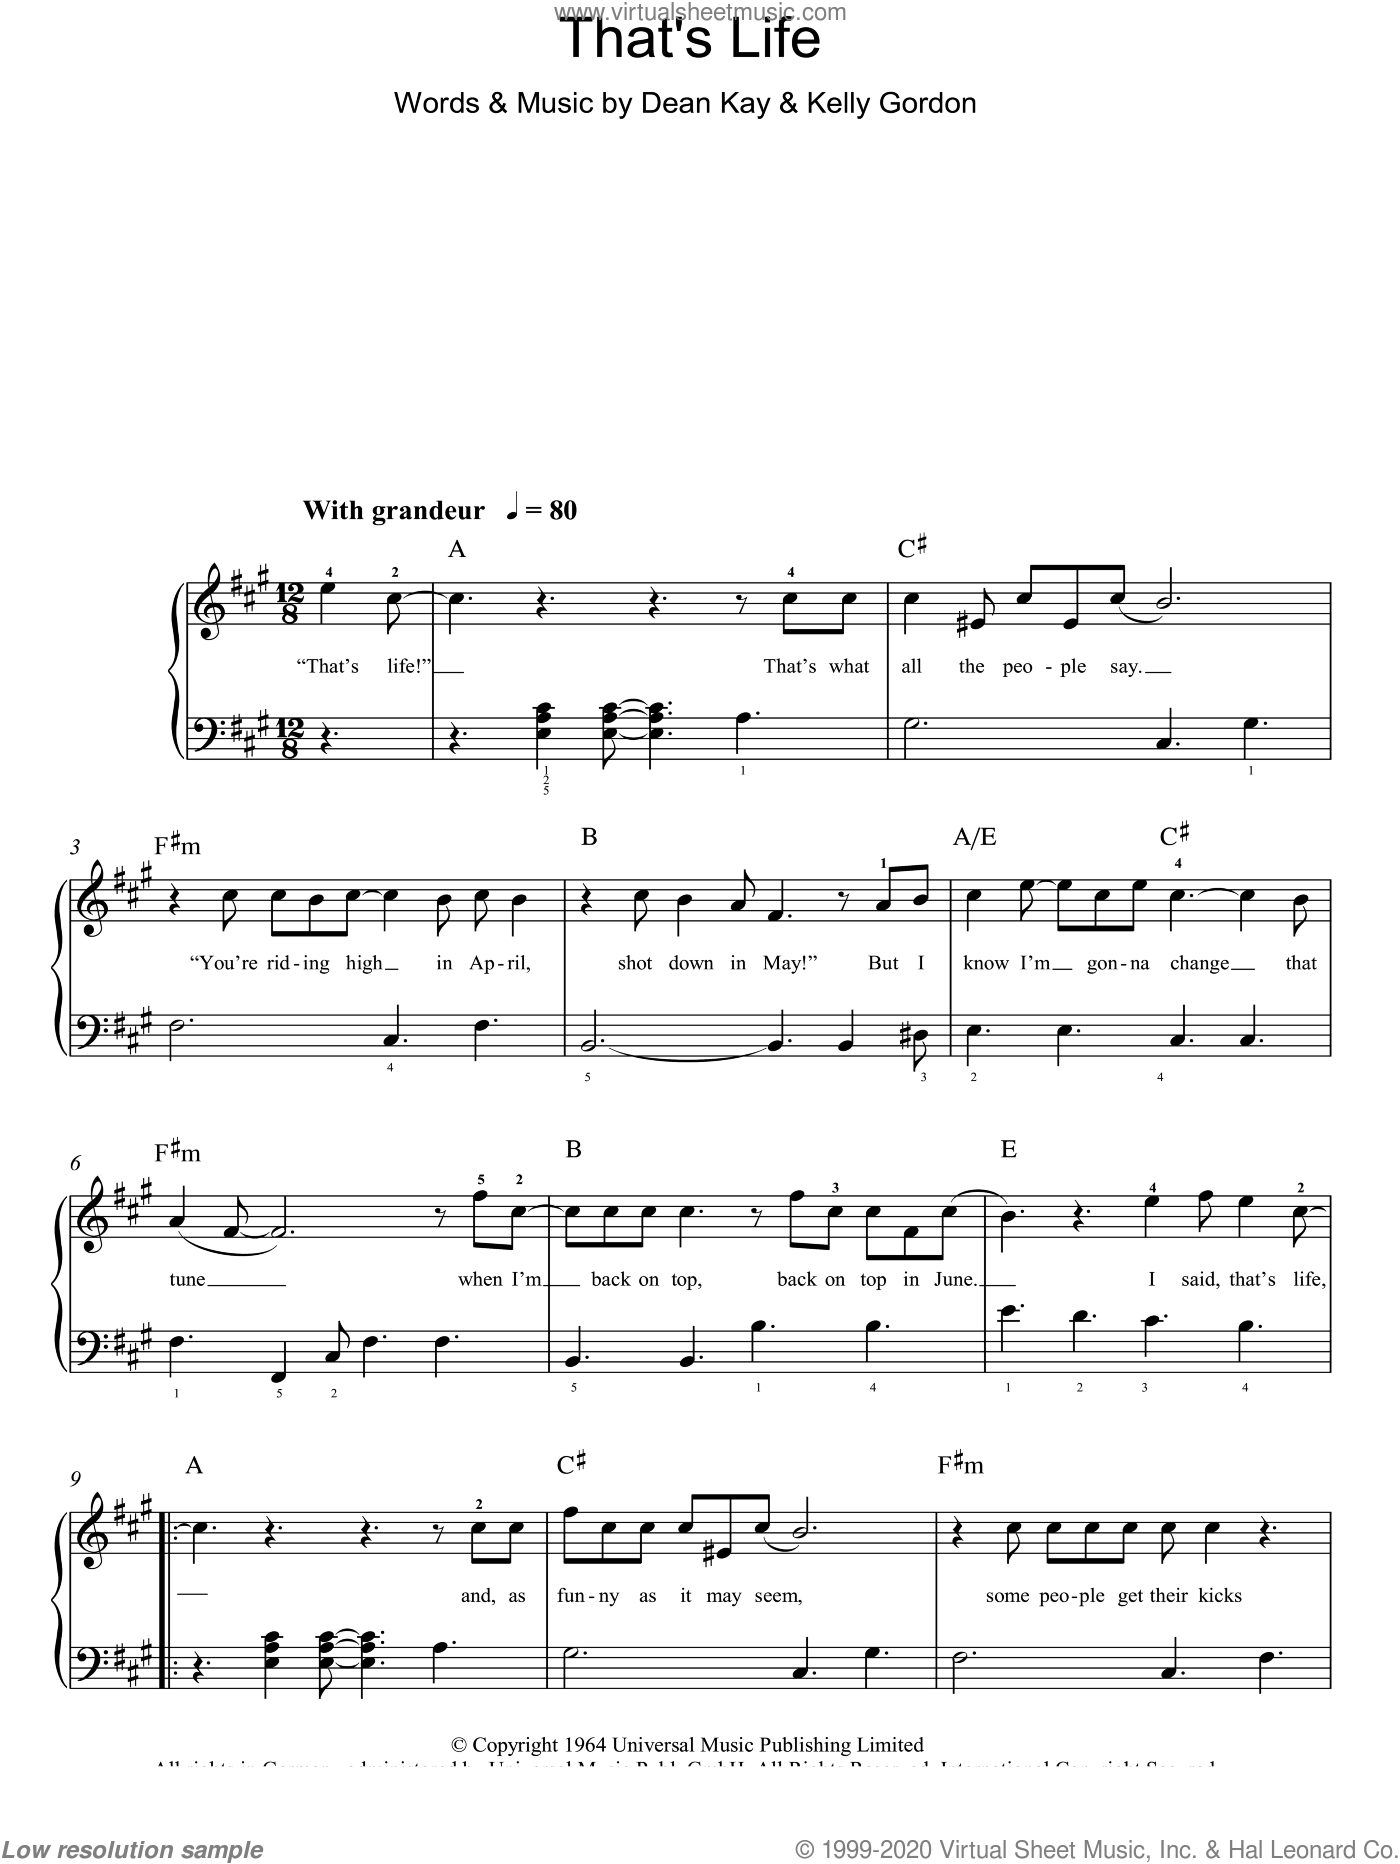 That's Life sheet music for piano solo (chords) by Dean Kay